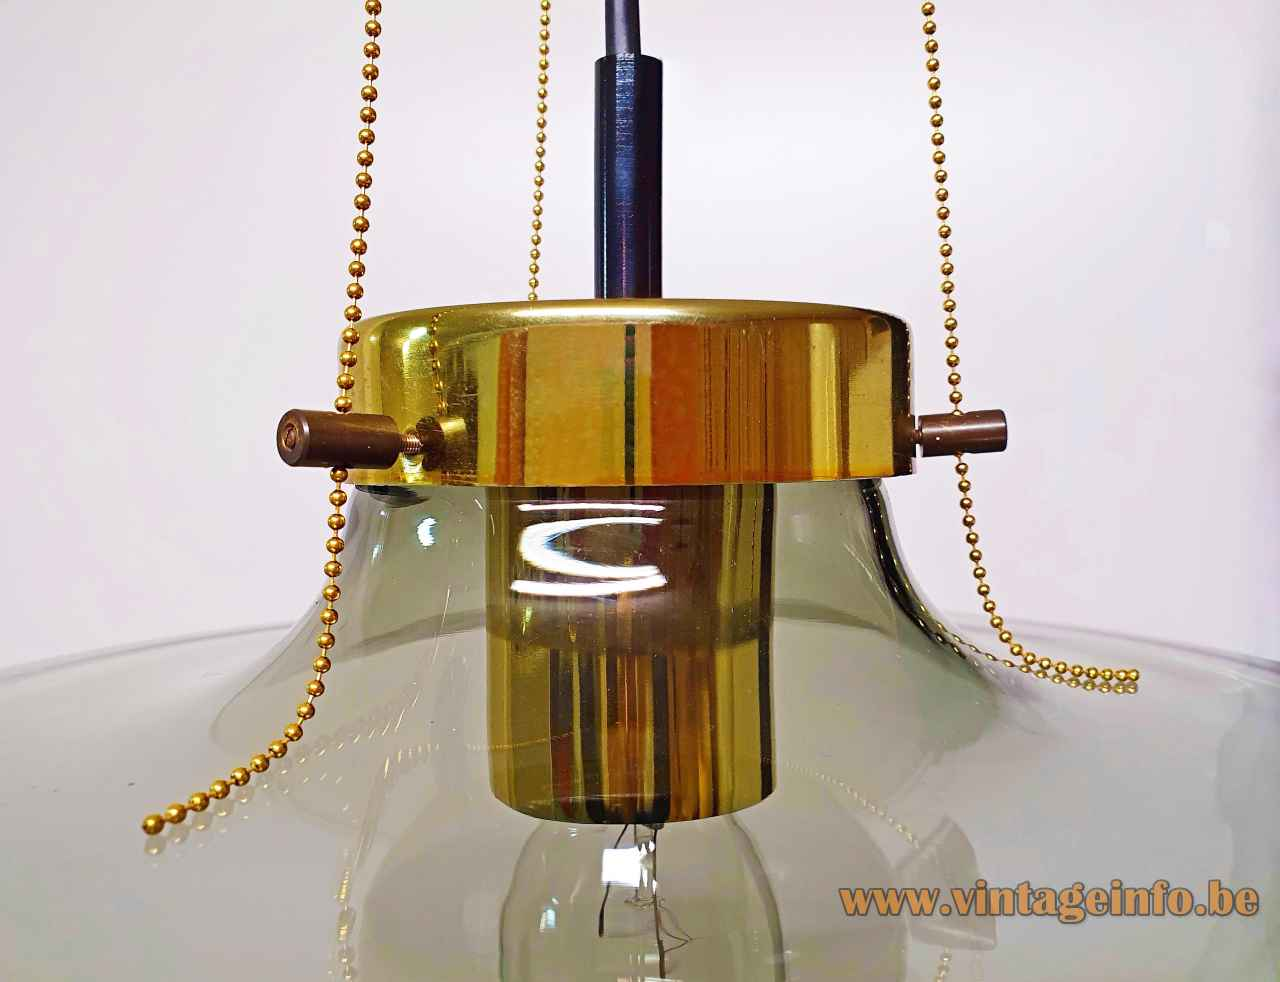 Raak High Chaparral pendant lamp droplet smoked glass lampshade pearl chains 1960s 1970s Netherlands E27 socket